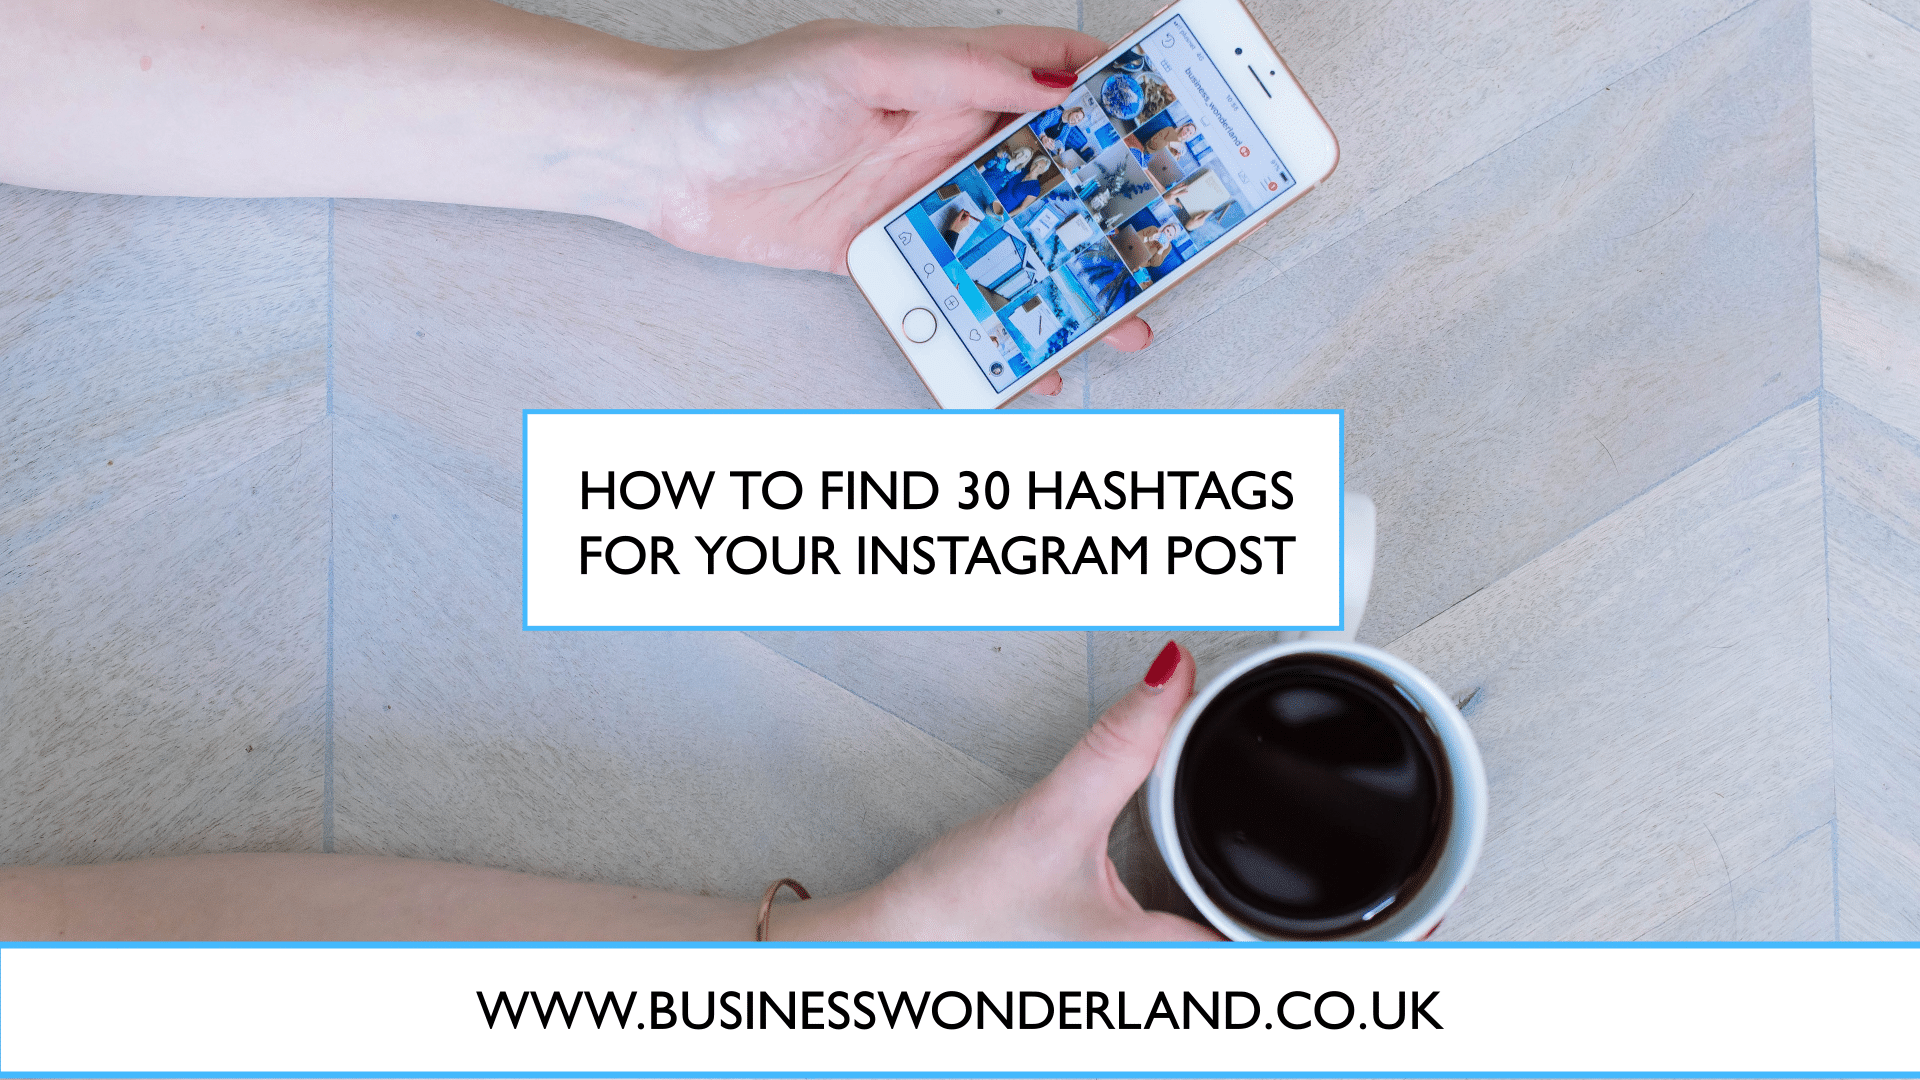 How to find 30 hashtags for your Instagram post